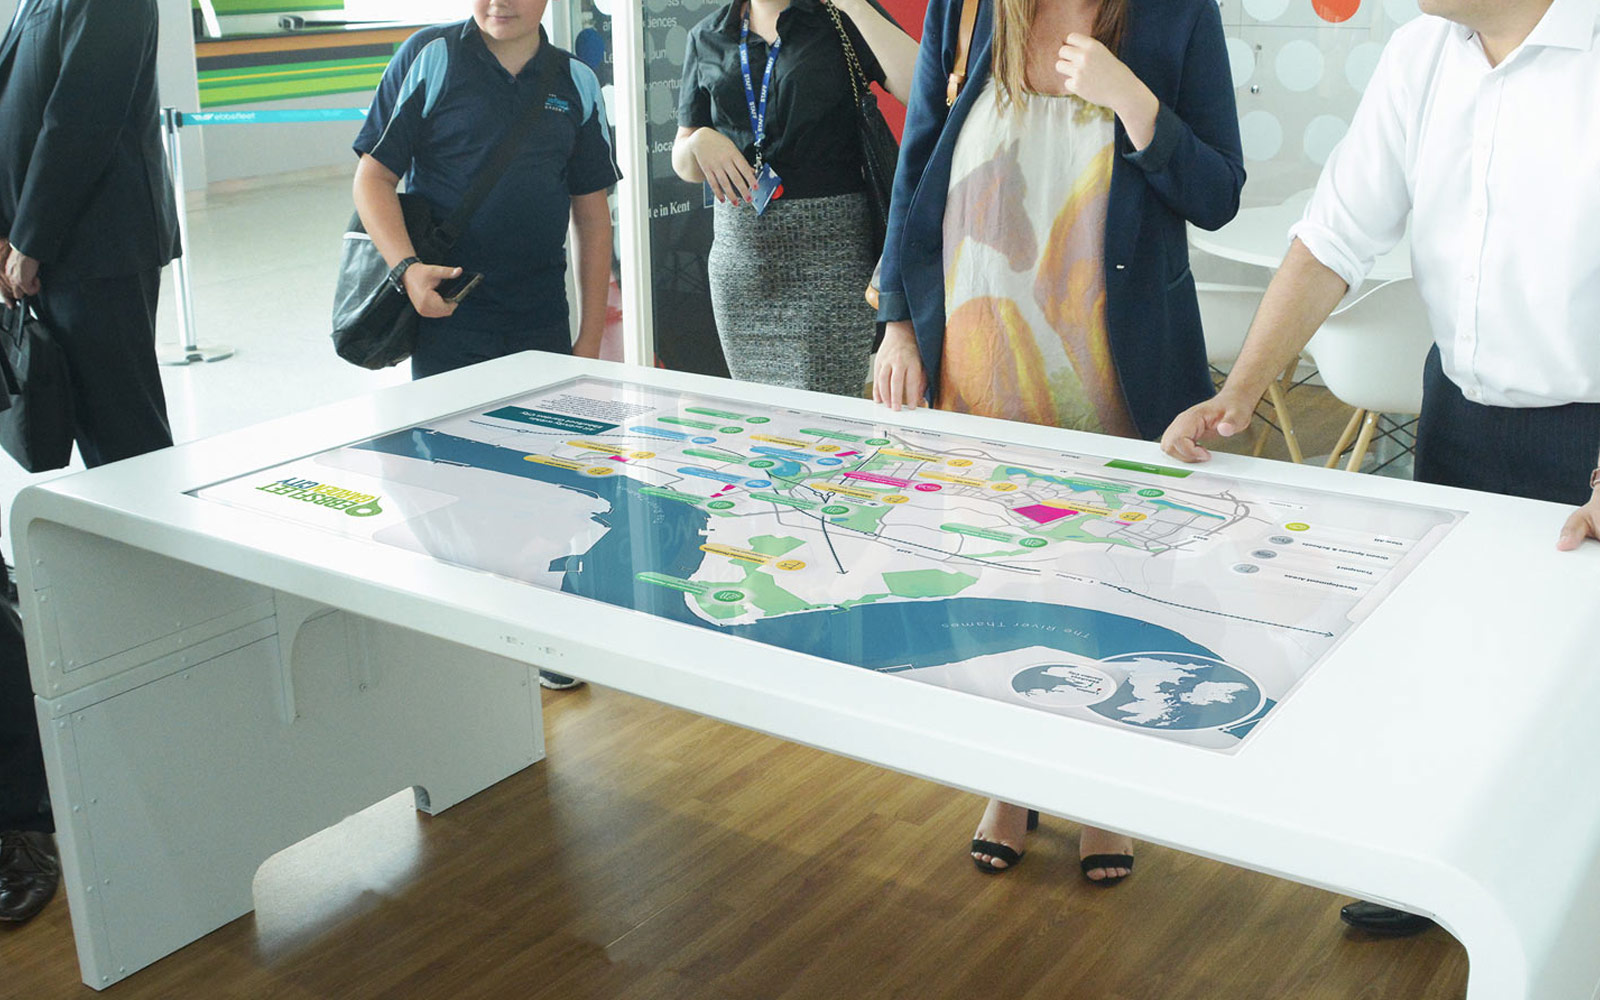 group of people interacting with Ebbsfleet touchscreen display on white table in office